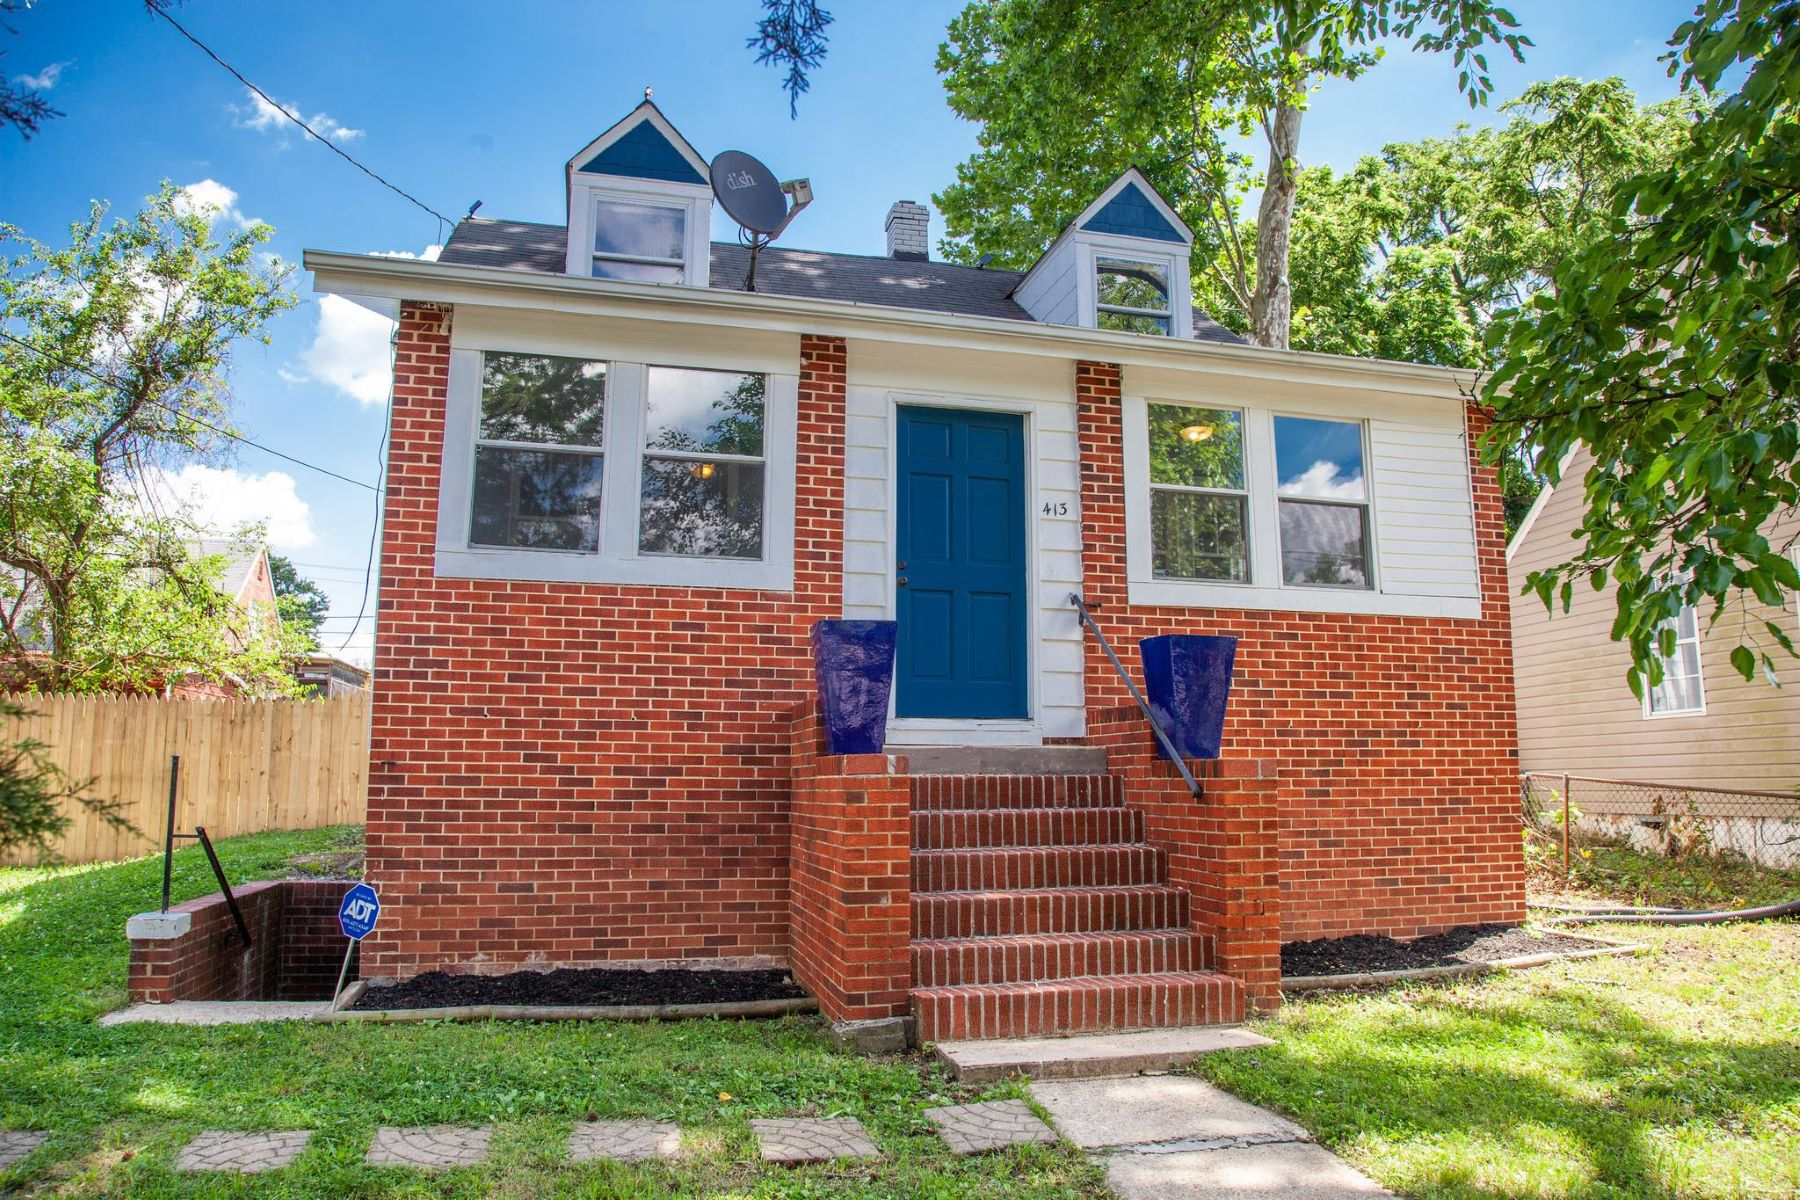 Single Family Homes for Active at 413 Cedarleaf Ave Capitol Heights, Maryland 20743 United States